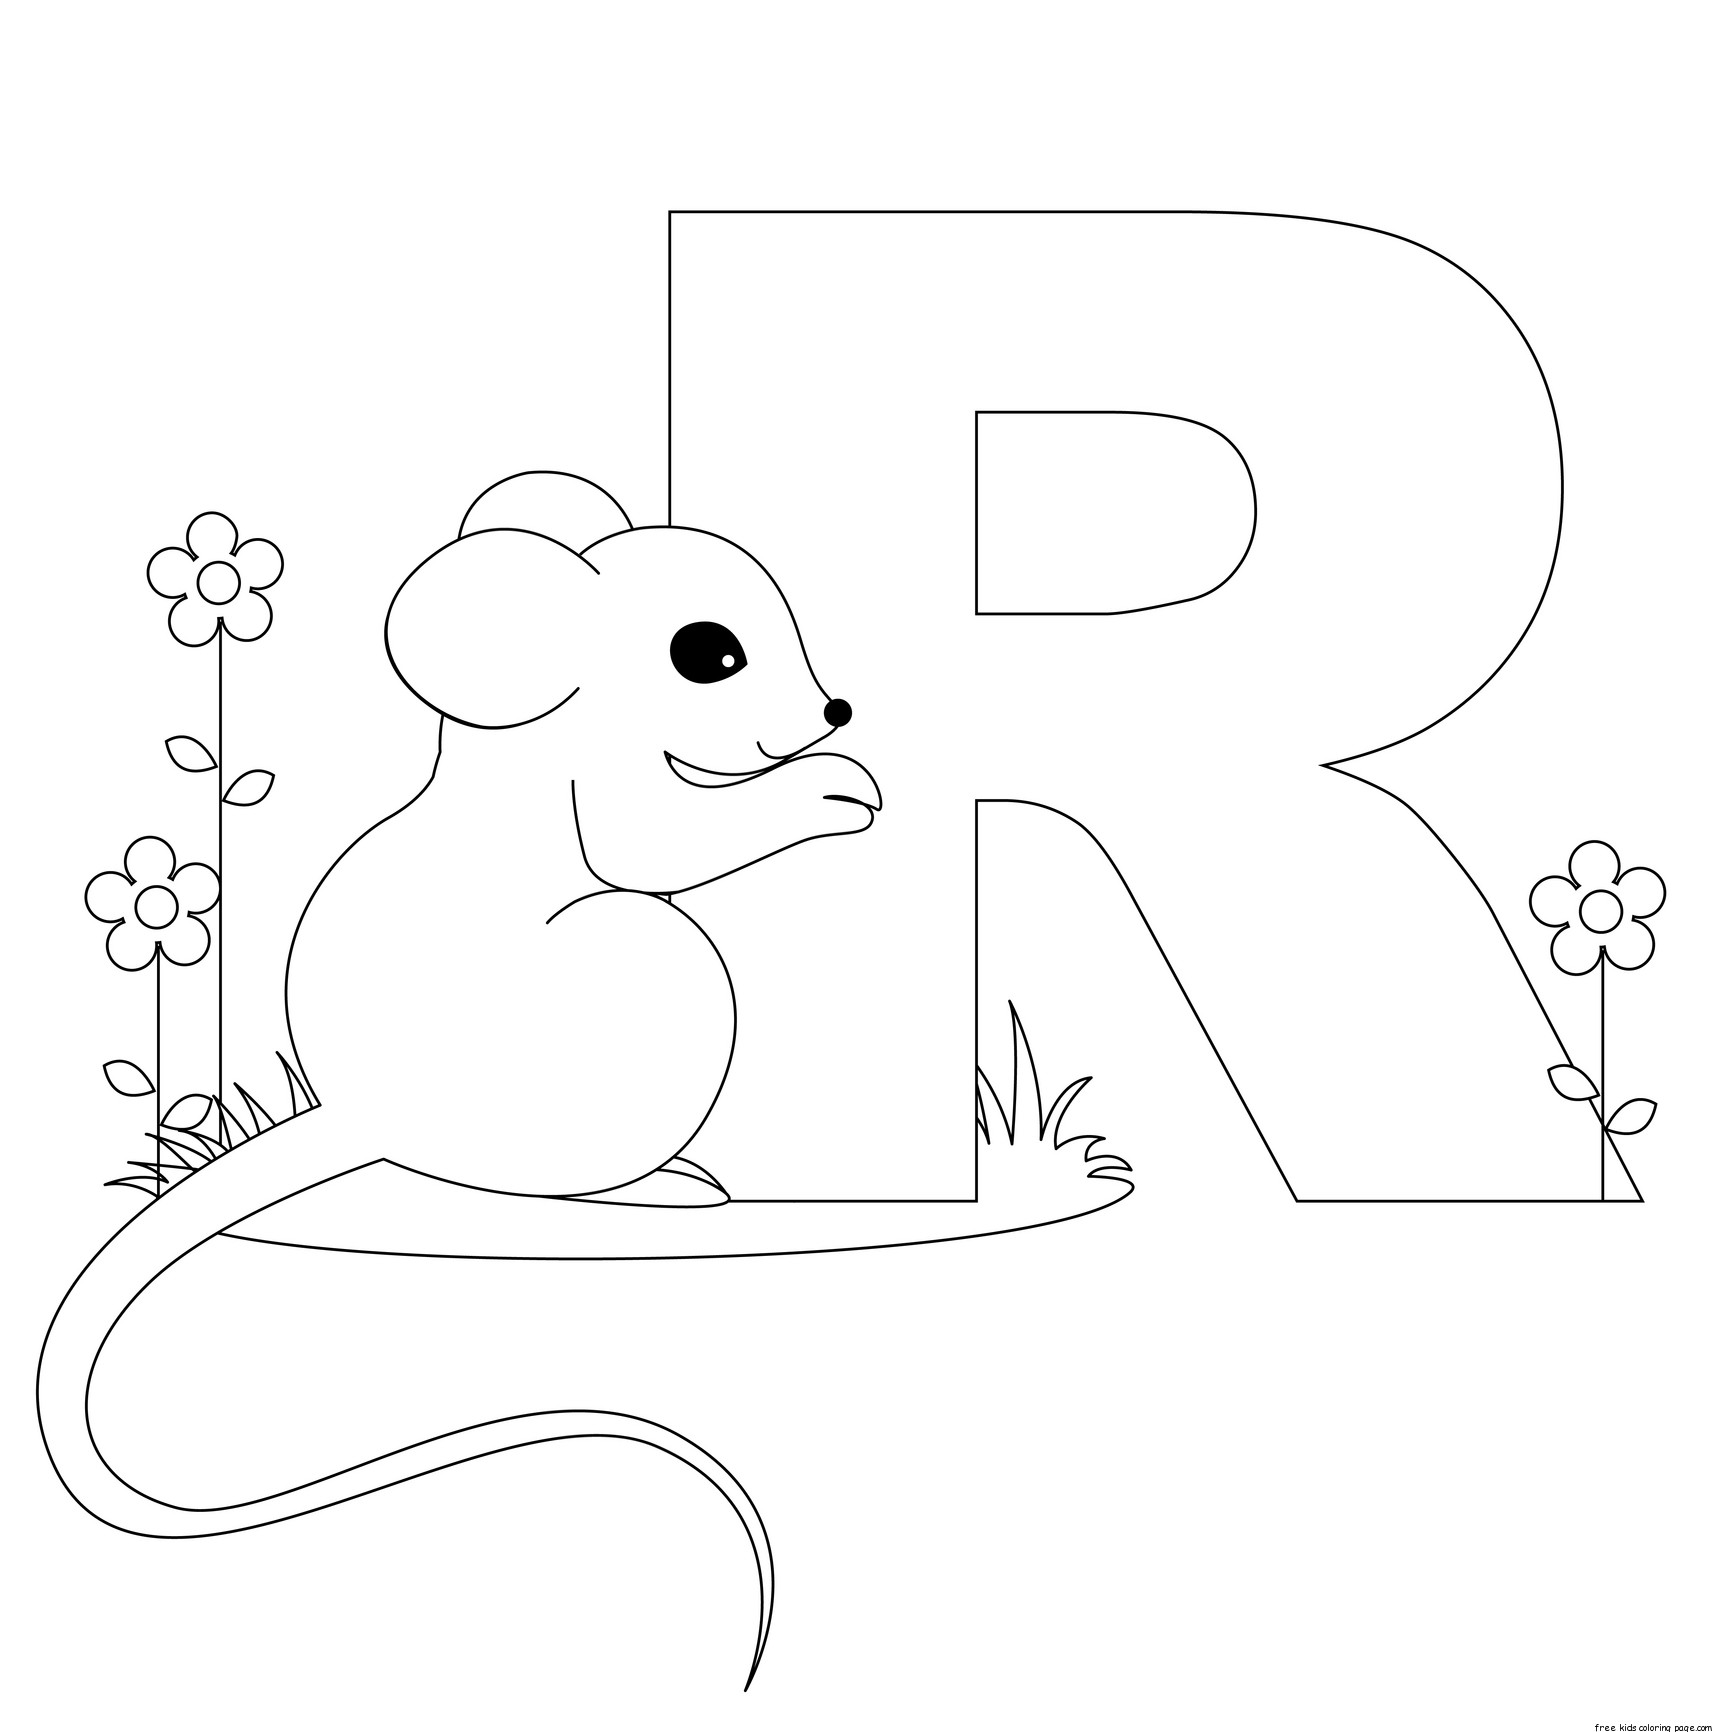 printable alphabet coloring pages animals | Printable animal alphabet letters coloring pages letter ...